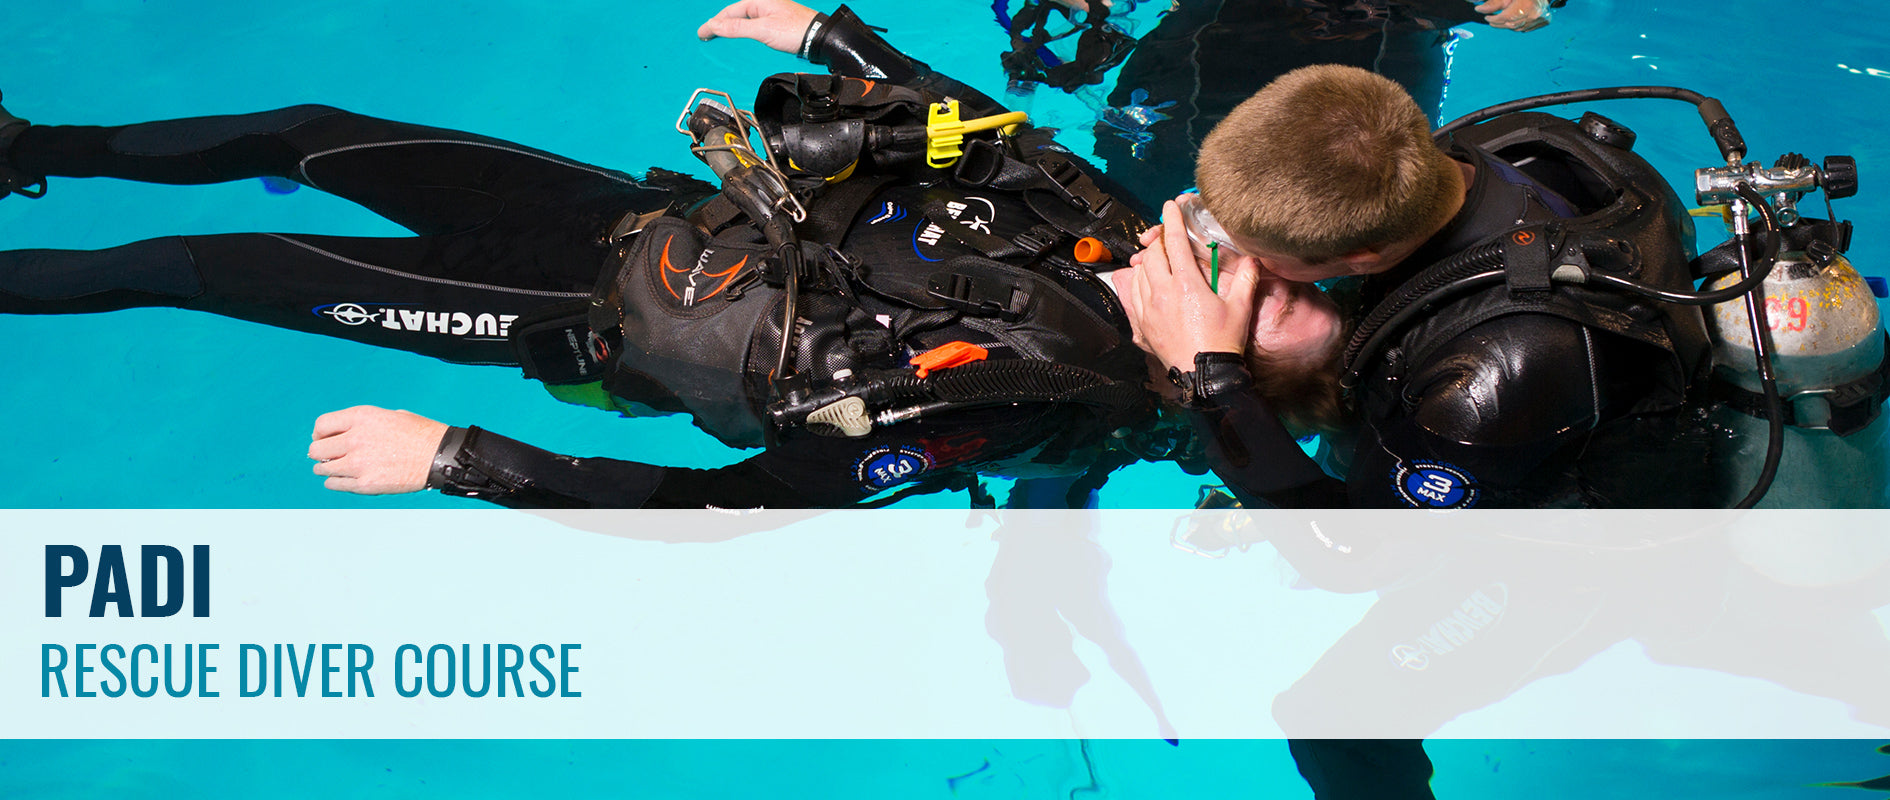 PADI Rescue Diver Course Dunedin, New Zealand